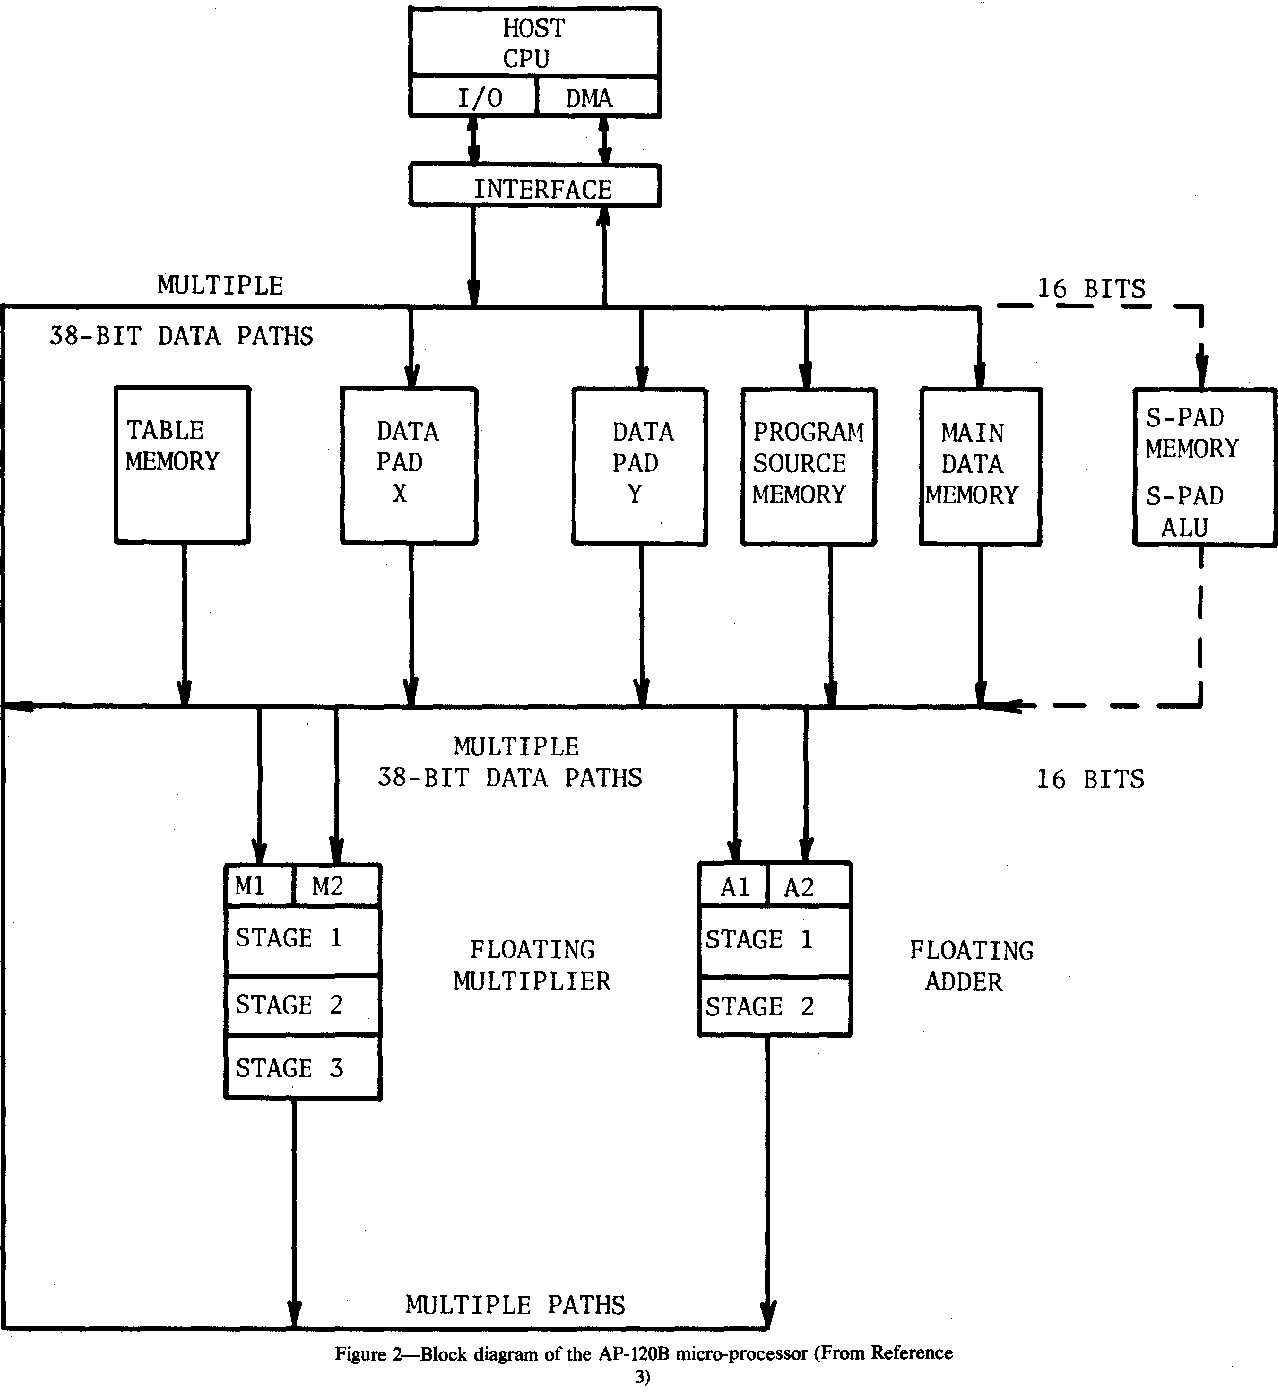 hight resolution of figure 2 block diagram of the ap 120b micro processor from reference